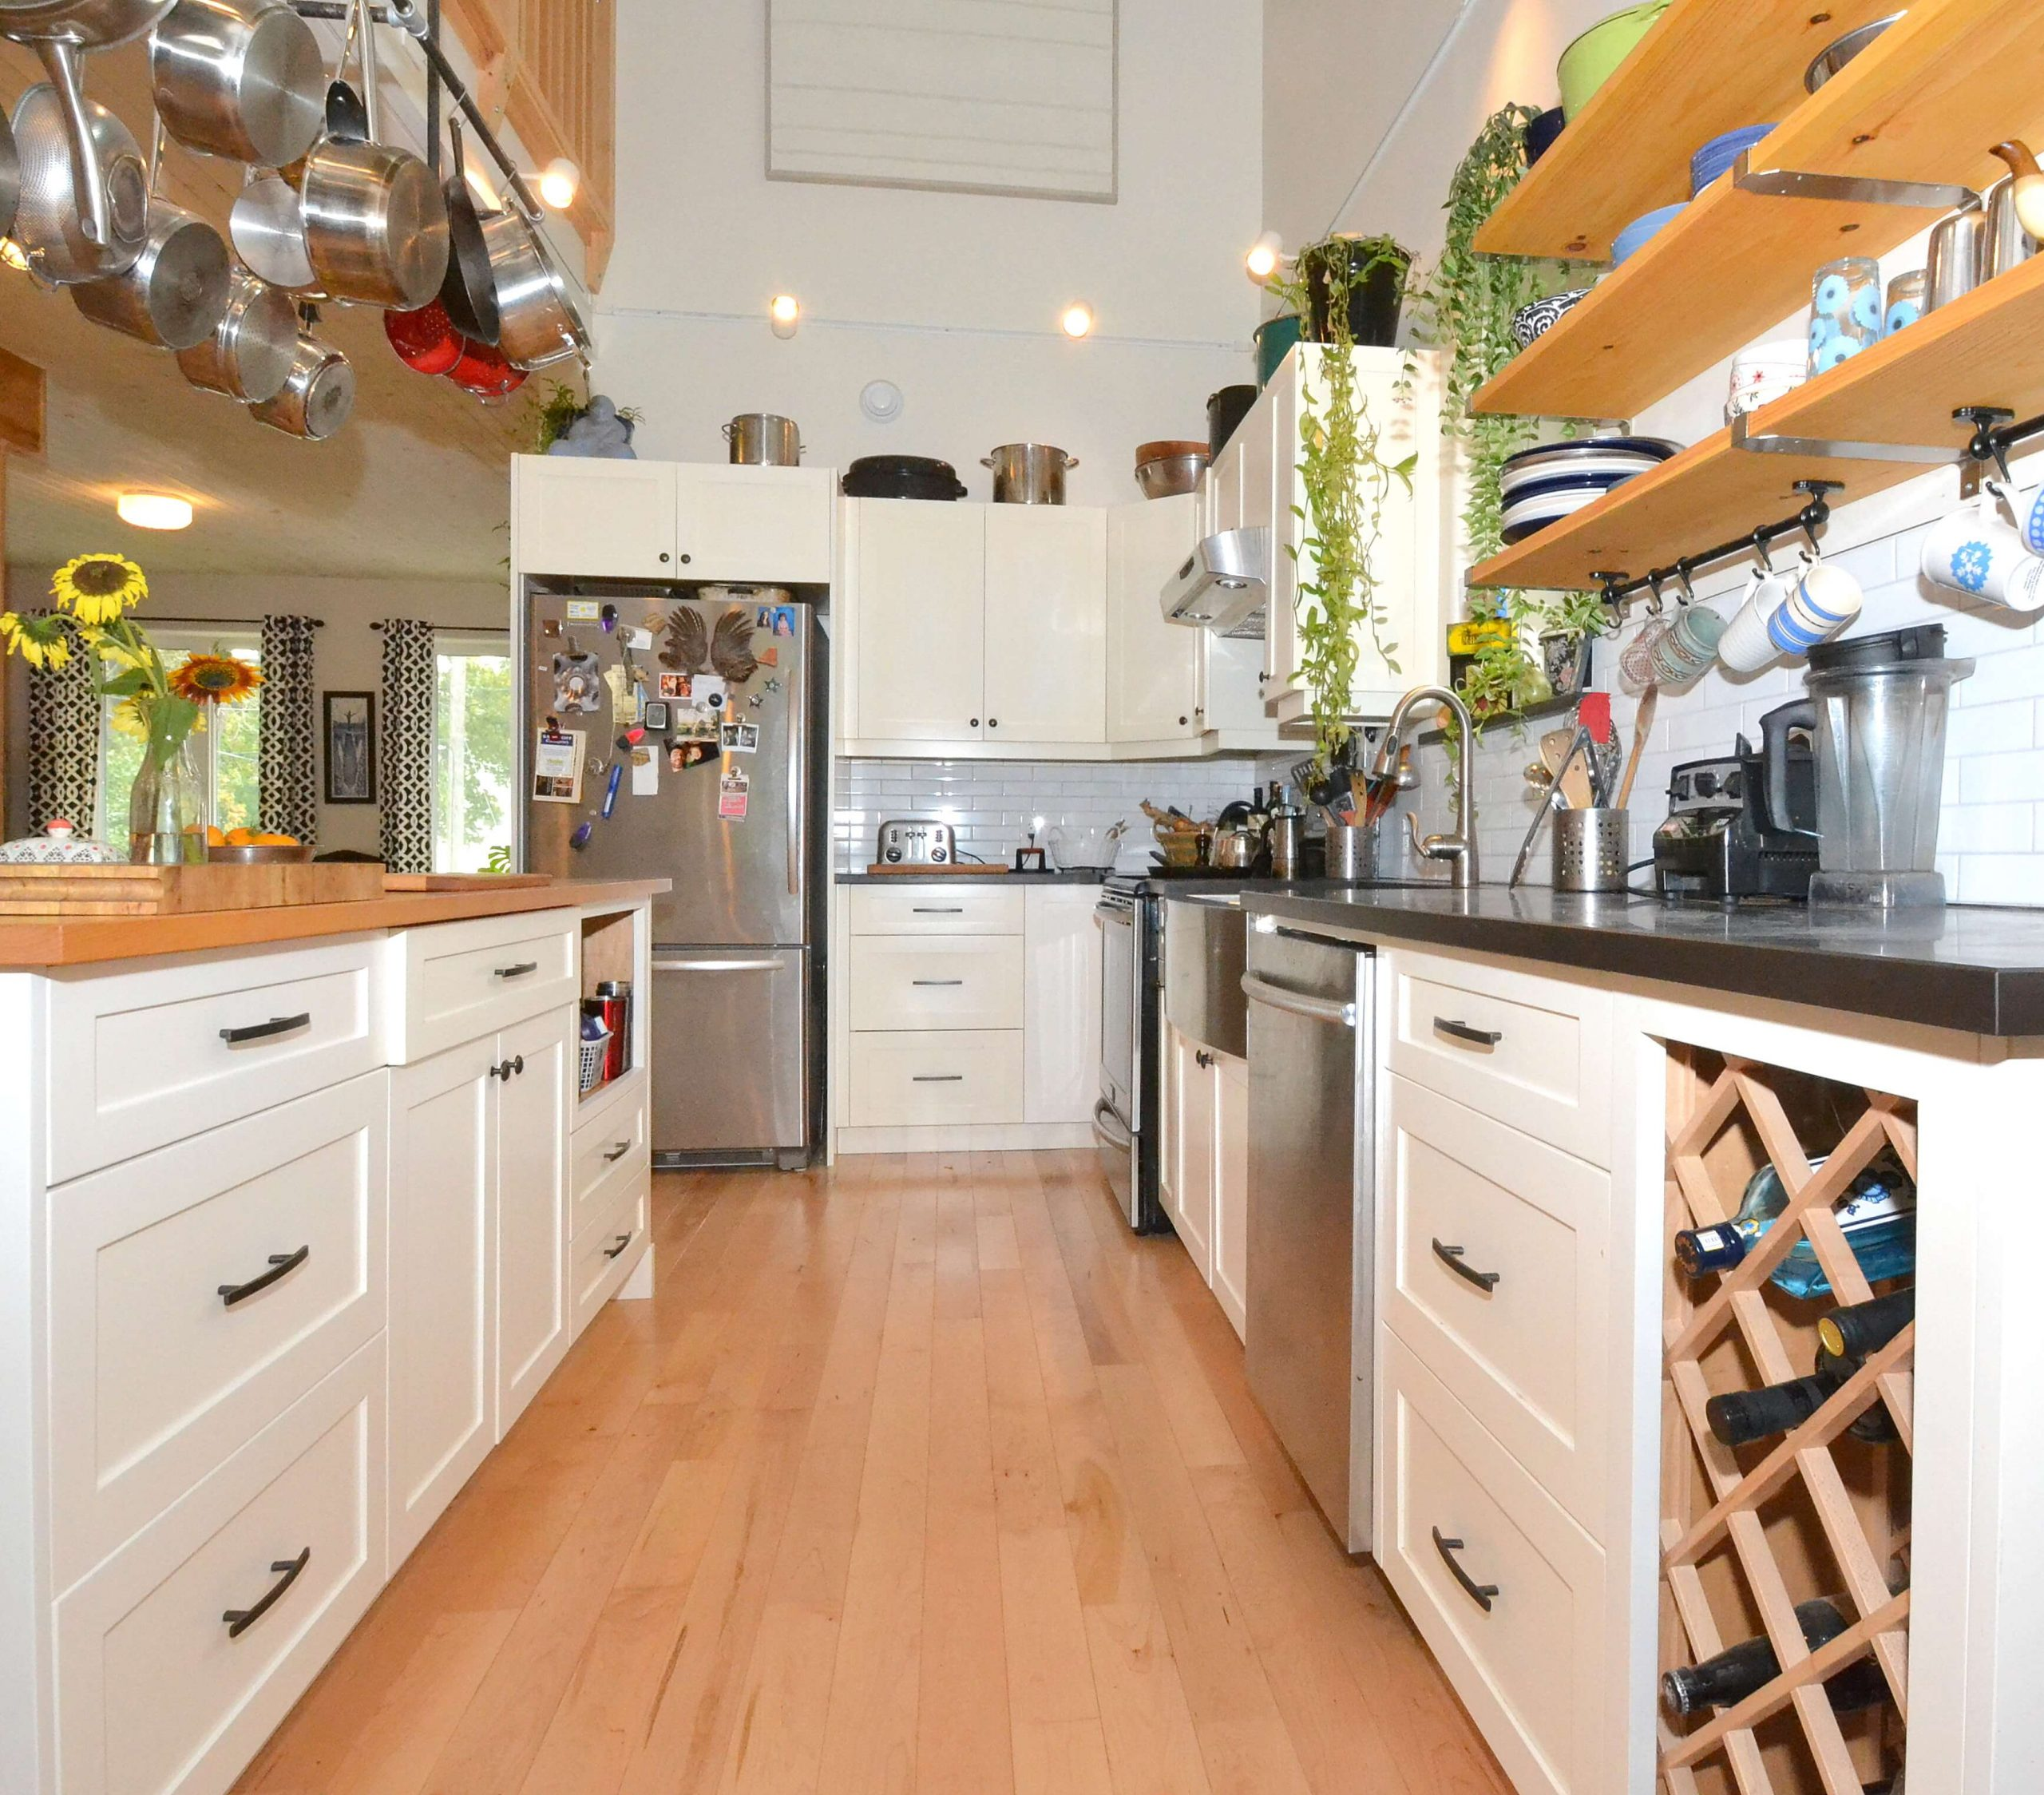 Paperstone countertops at Canada's Greenest Home